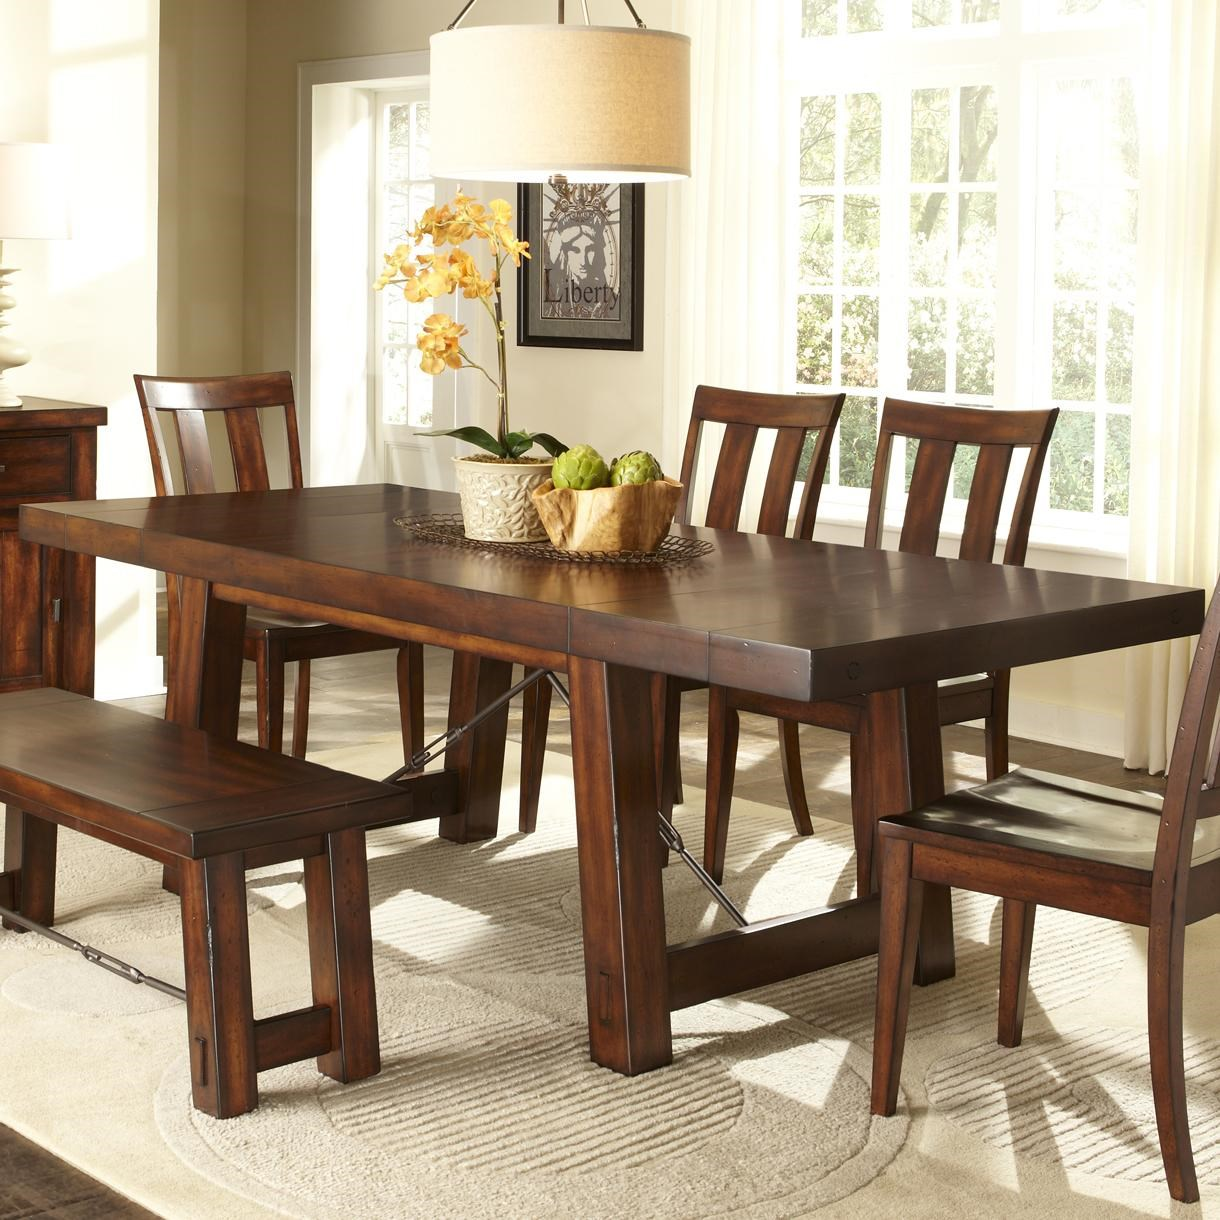 Tahoe Trestle Table with Iron Support Stretcher and